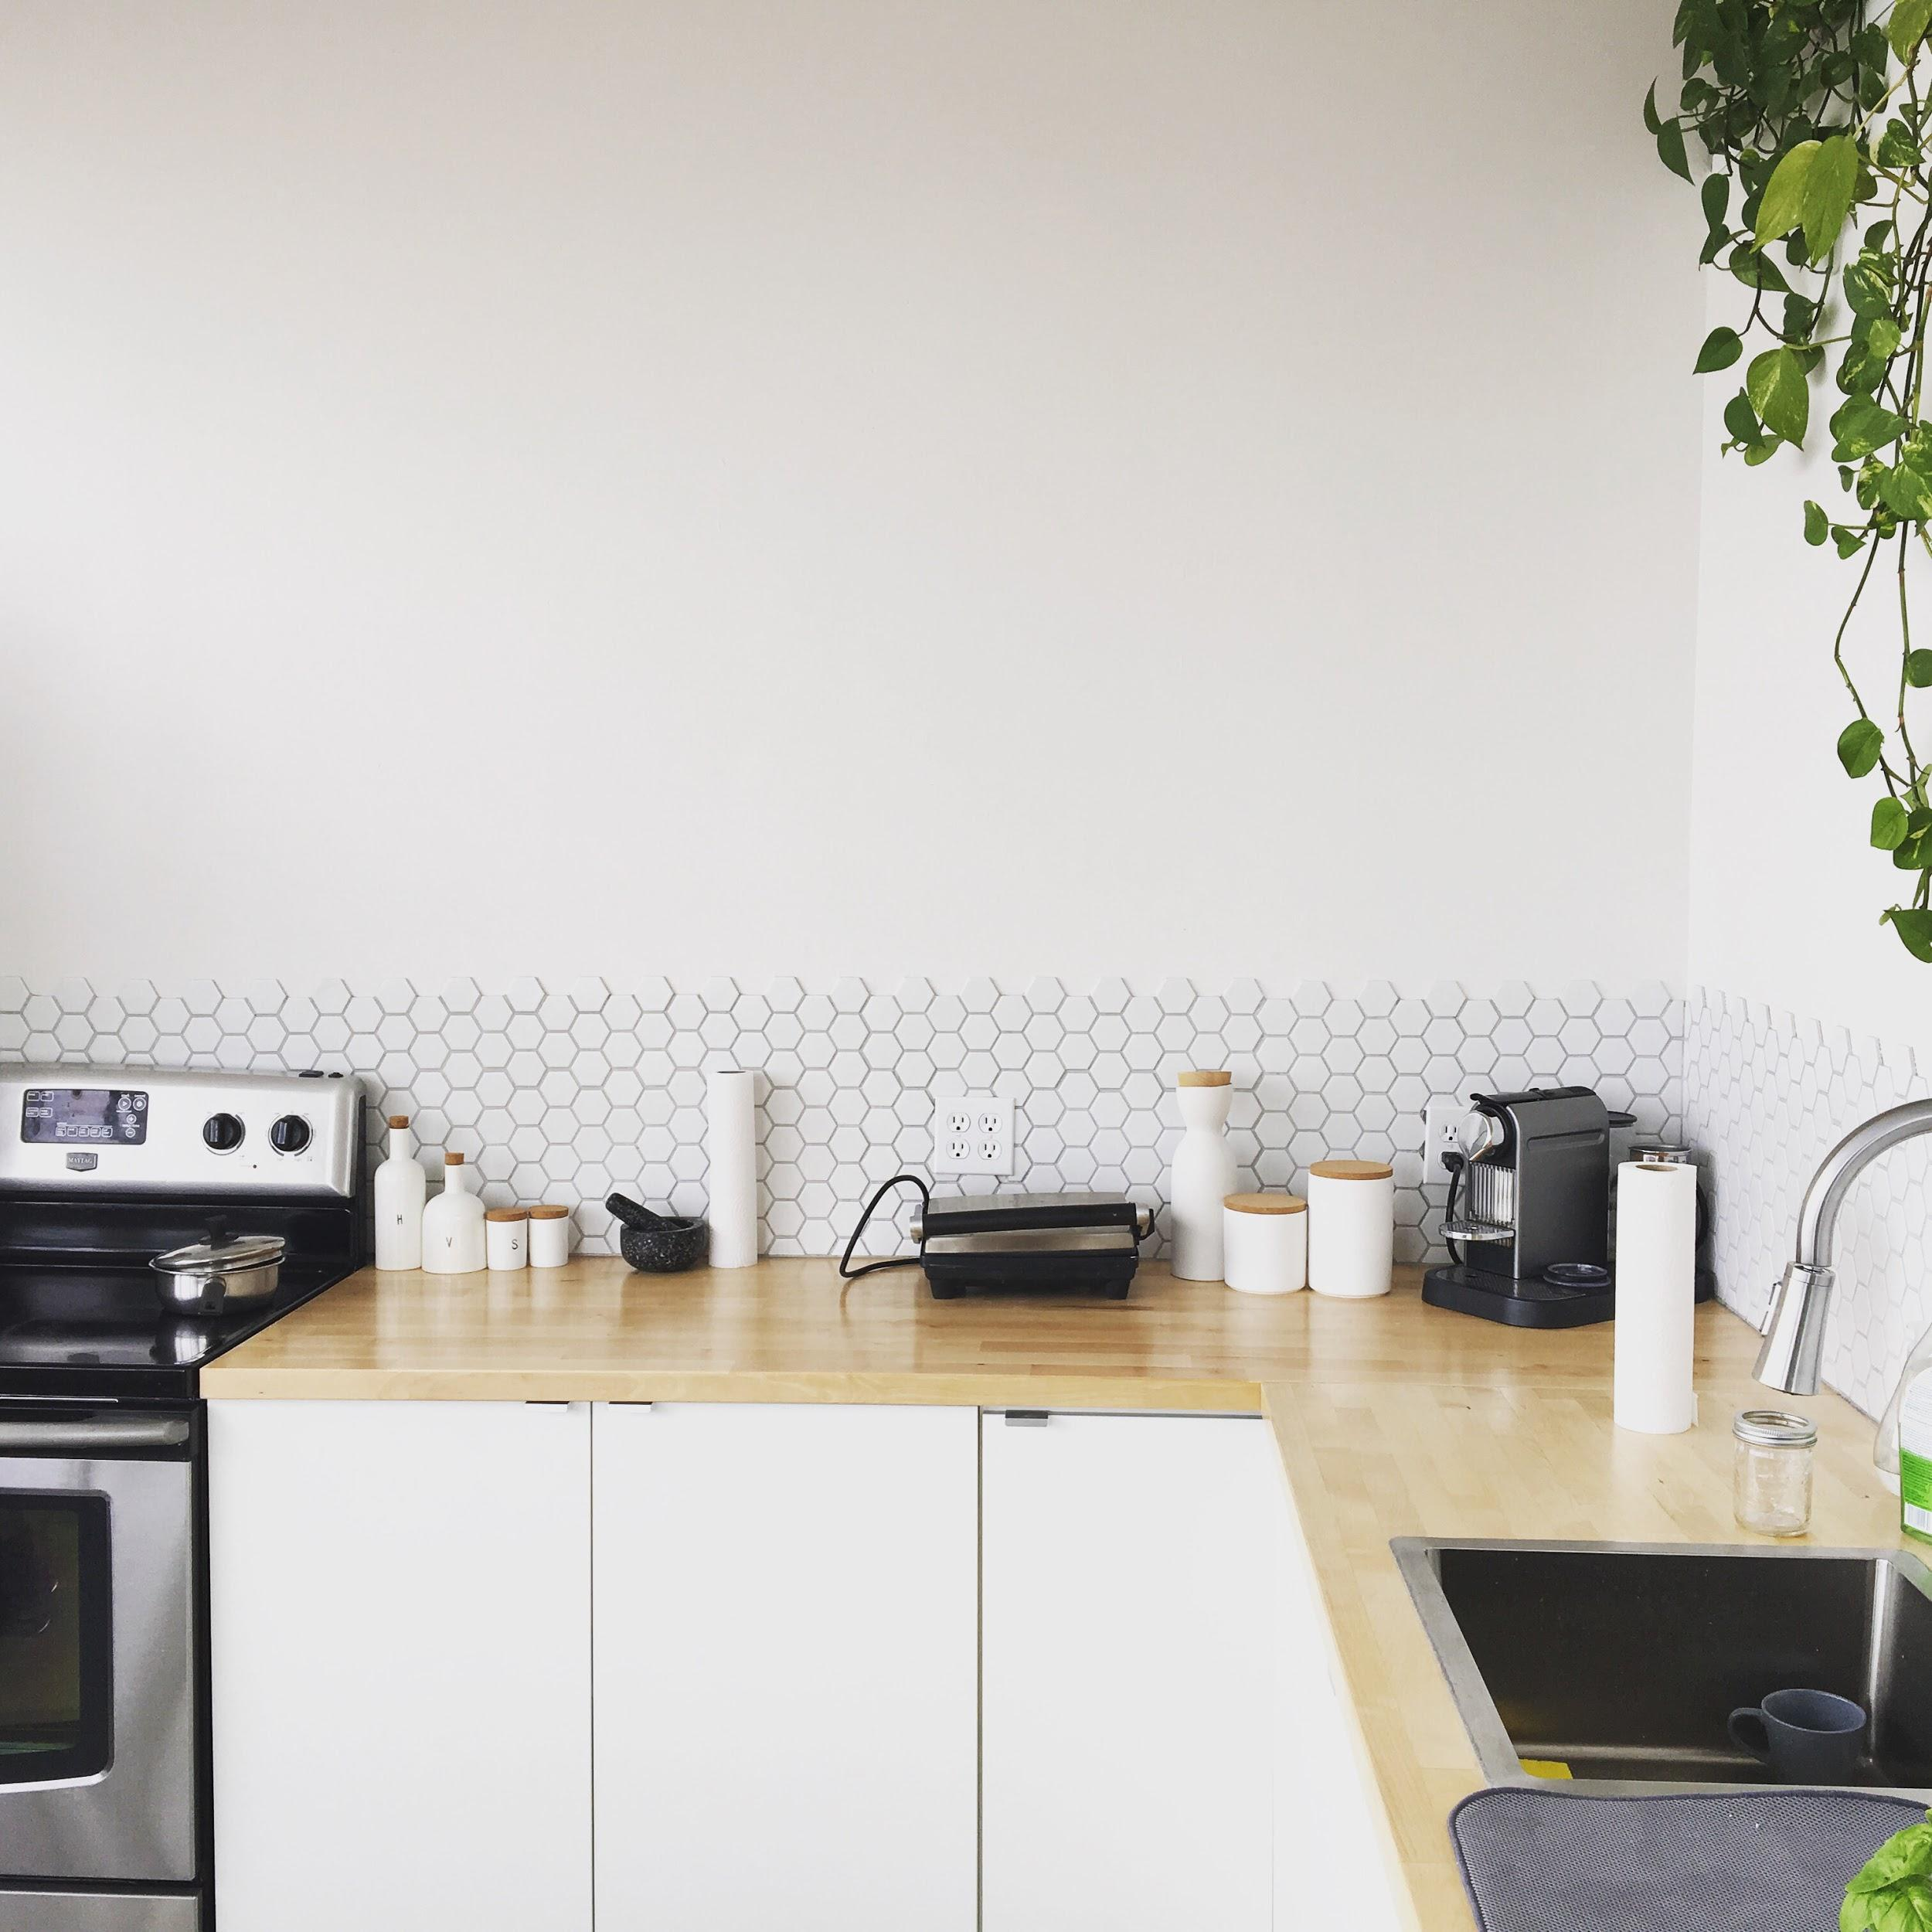 Soundproof Your Kitchen In 4 Easy Ways Small Design Ideas